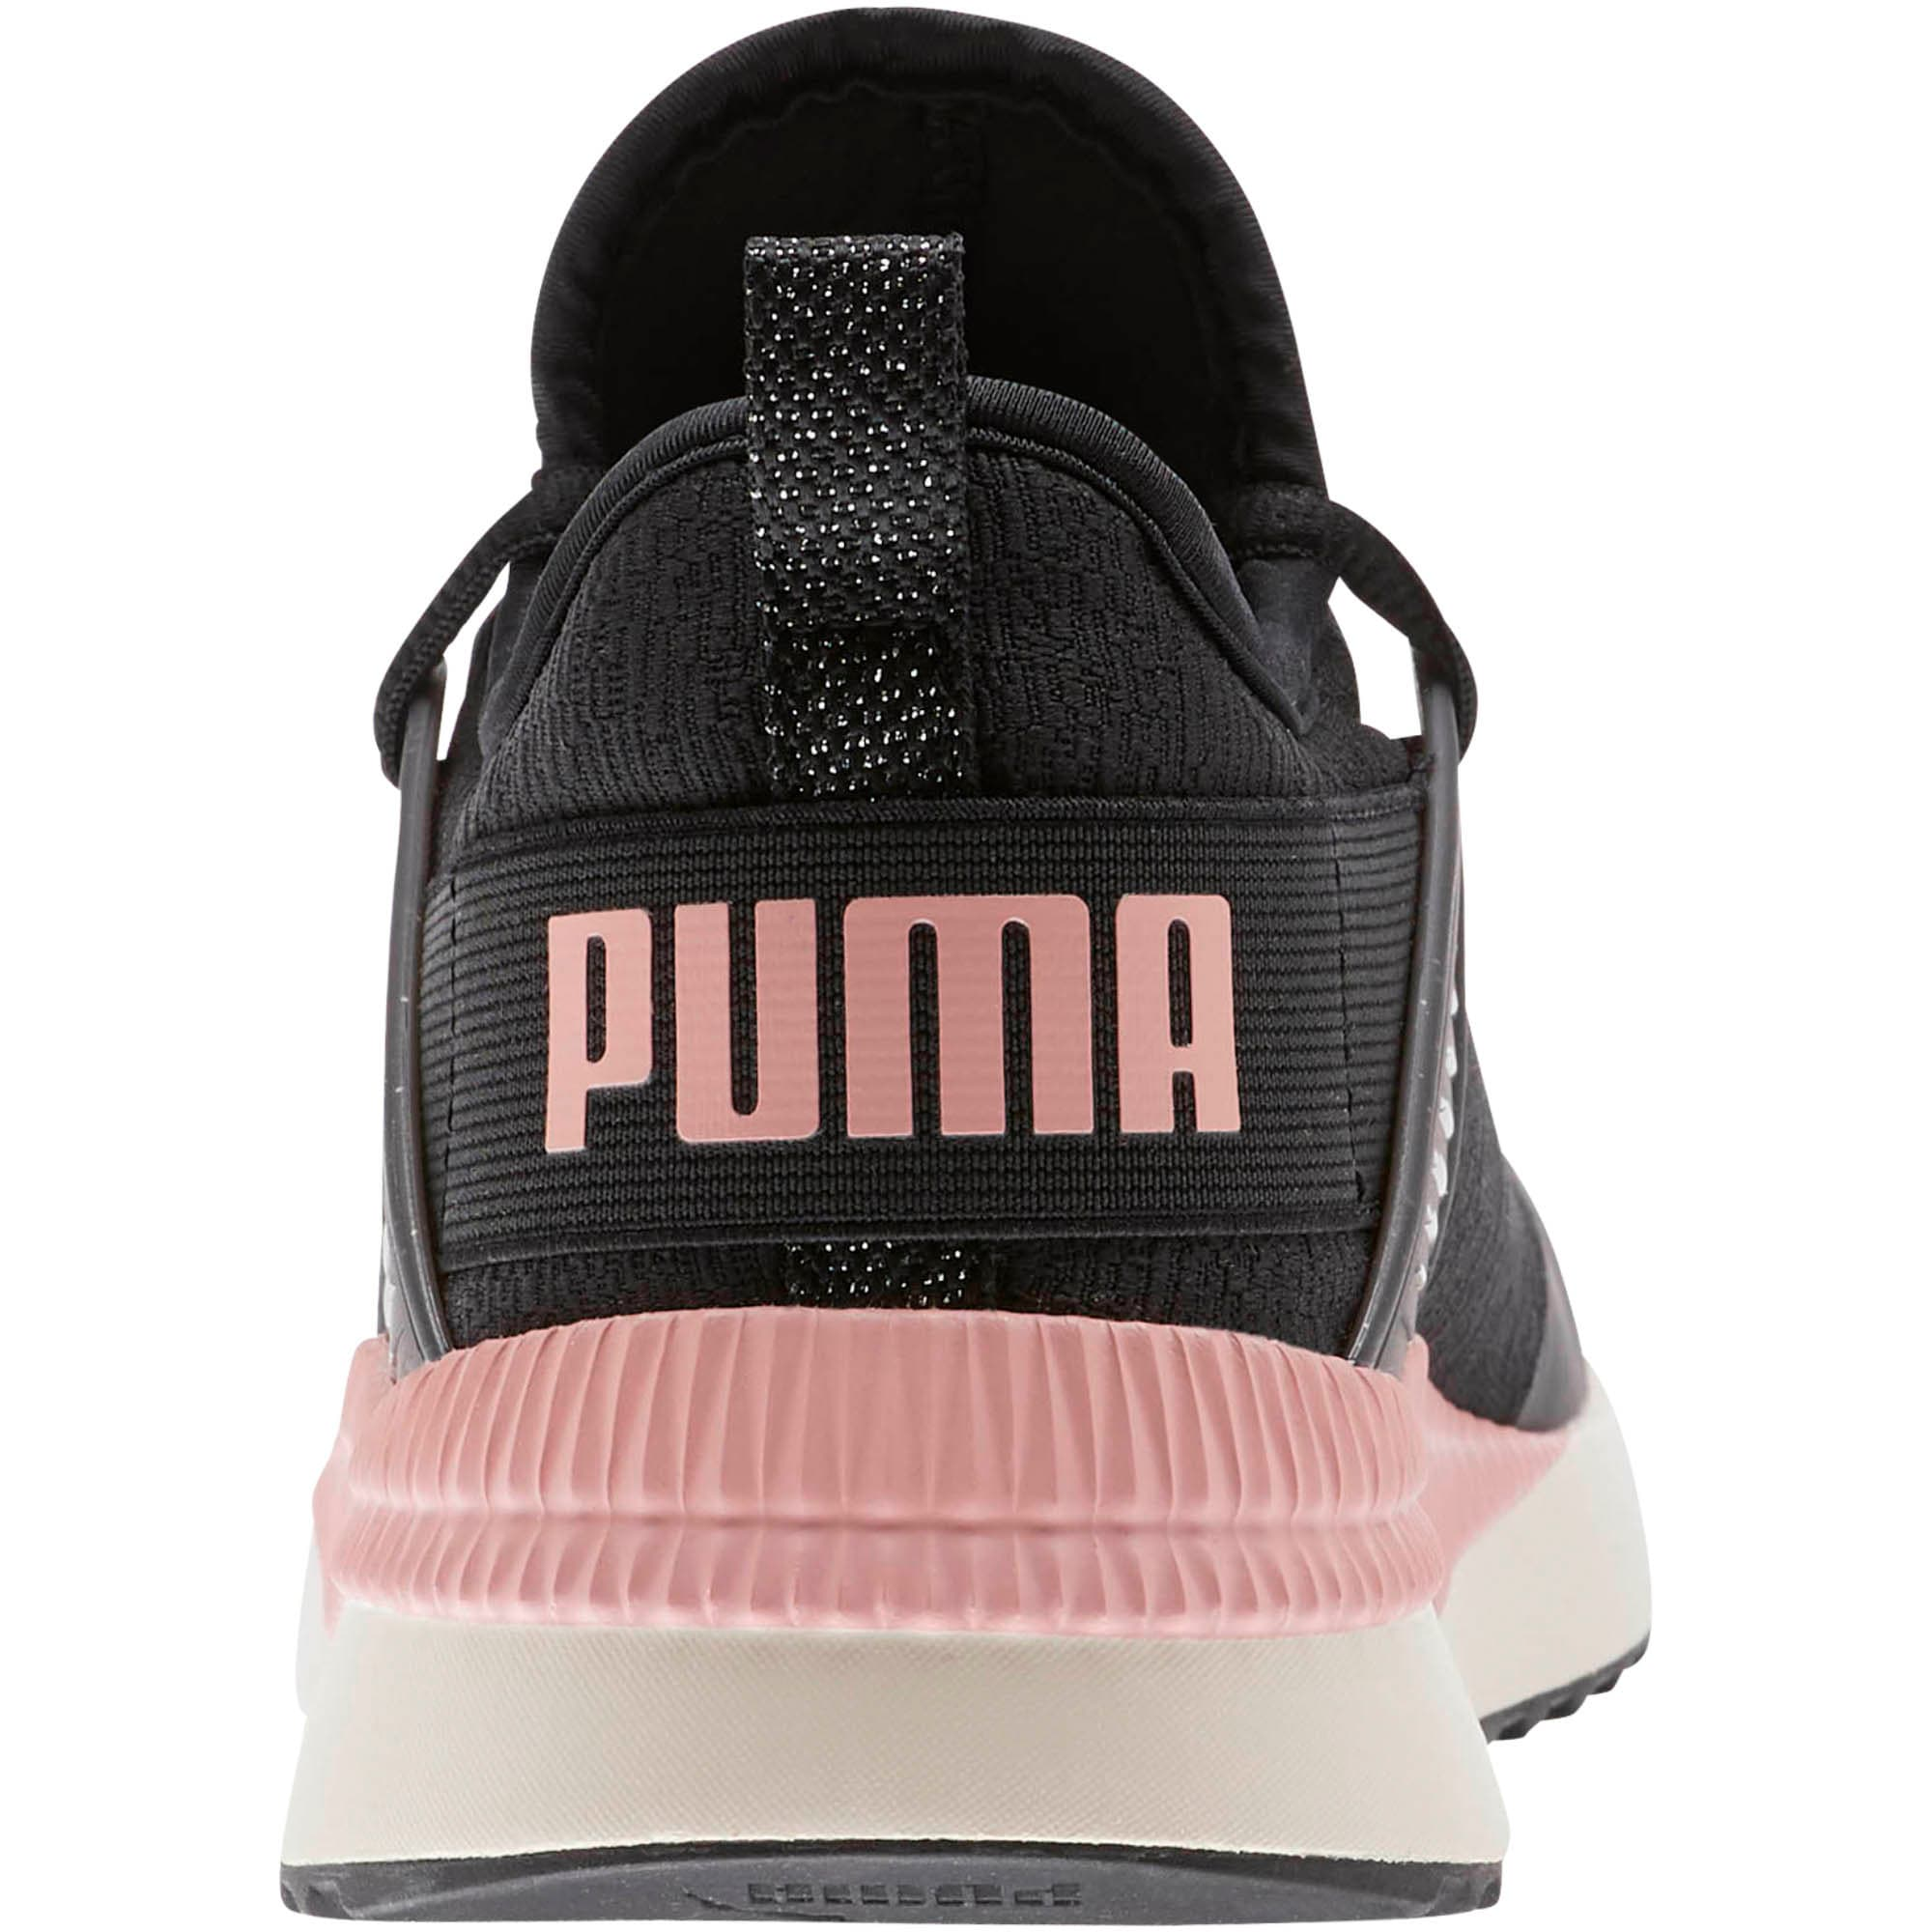 Thumbnail 3 of Pacer Next Cage Glitter Women's Sneakers, Puma Black-Bridal Rose, medium